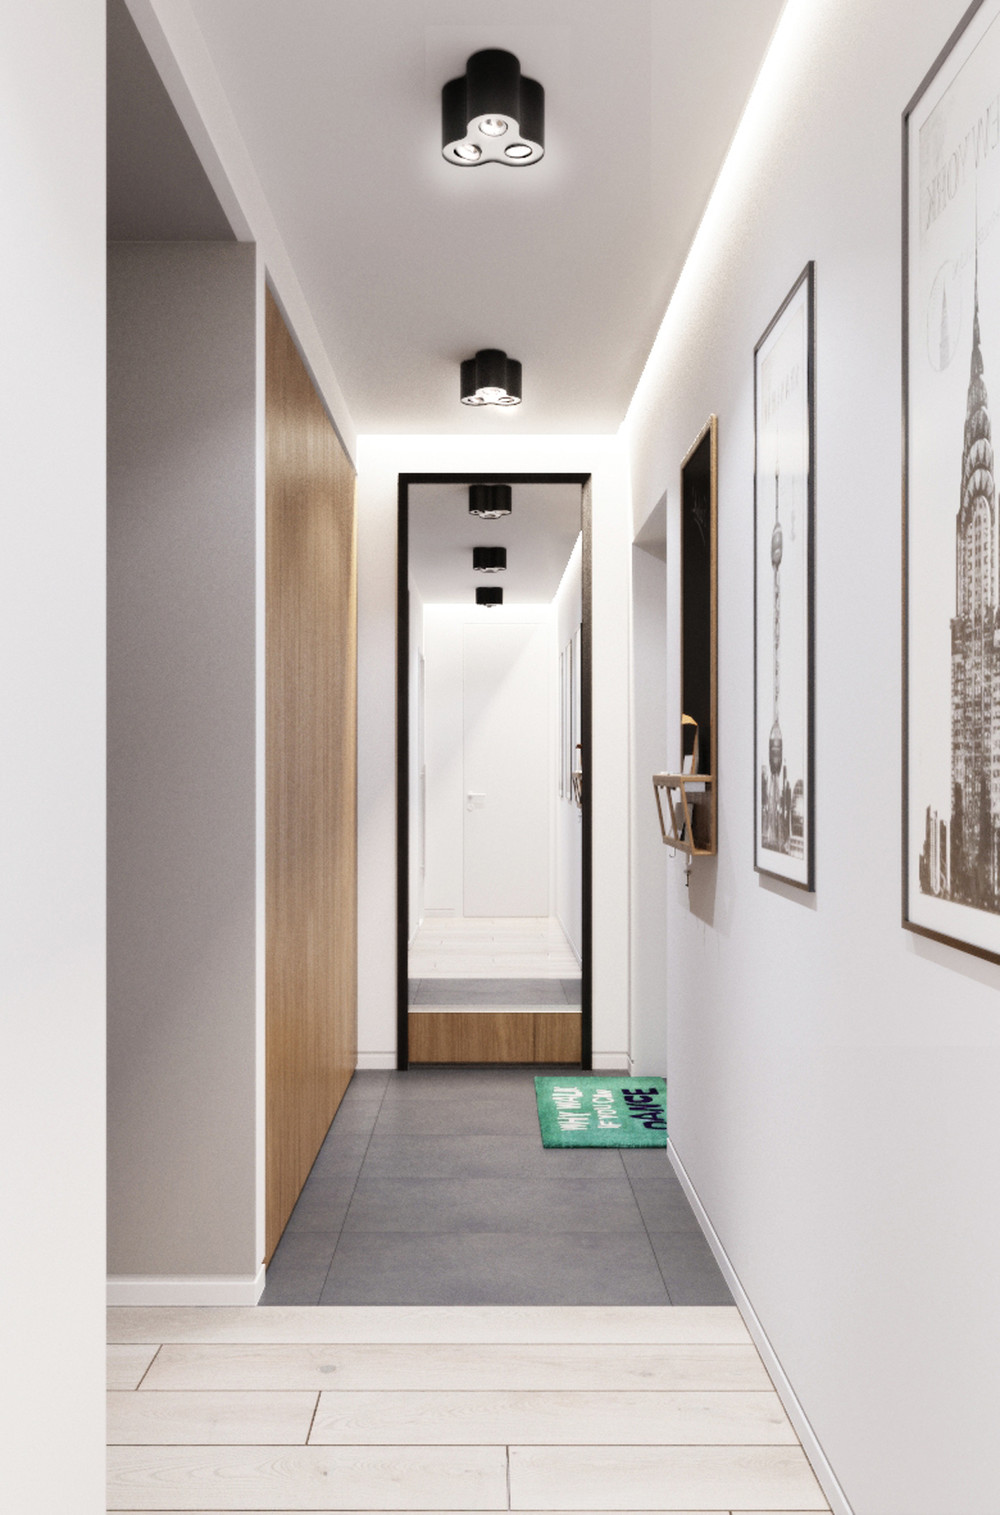 Stone Tile Floor - Creative apartment designs perfect for young families